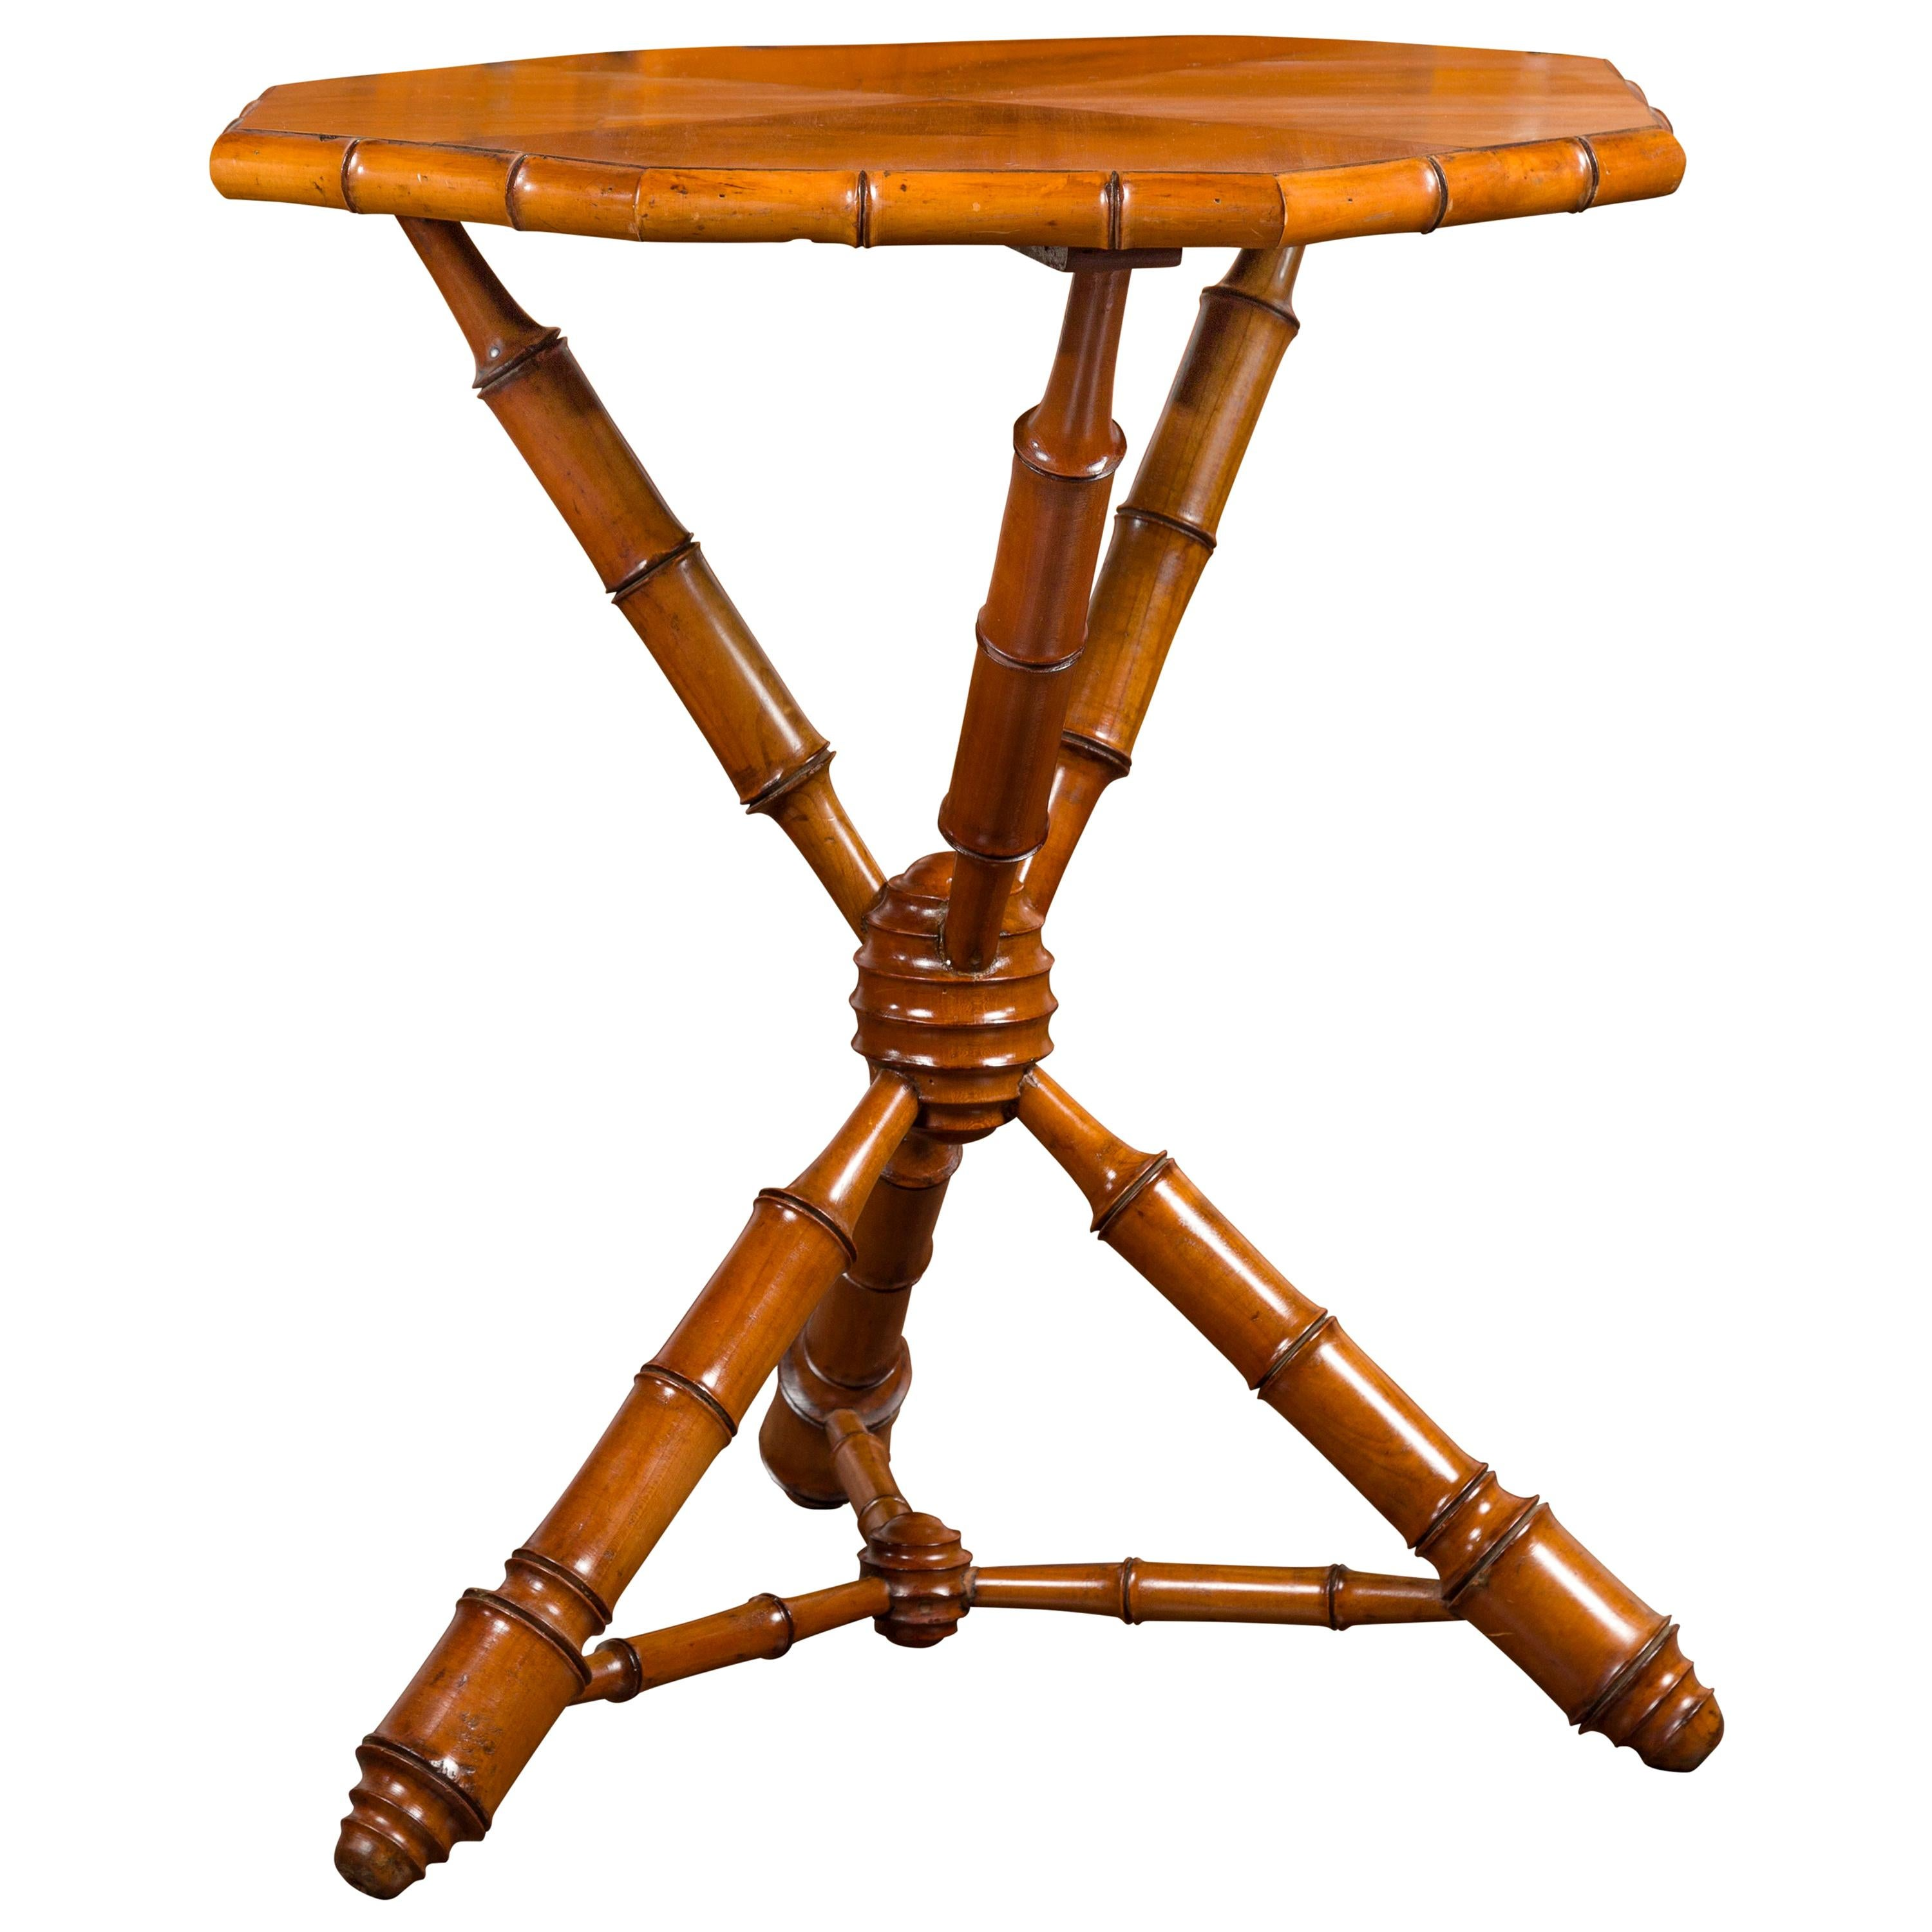 English 1880s Walnut Side Table with Octagonal Top and Faux-Bamboo Tripod Base